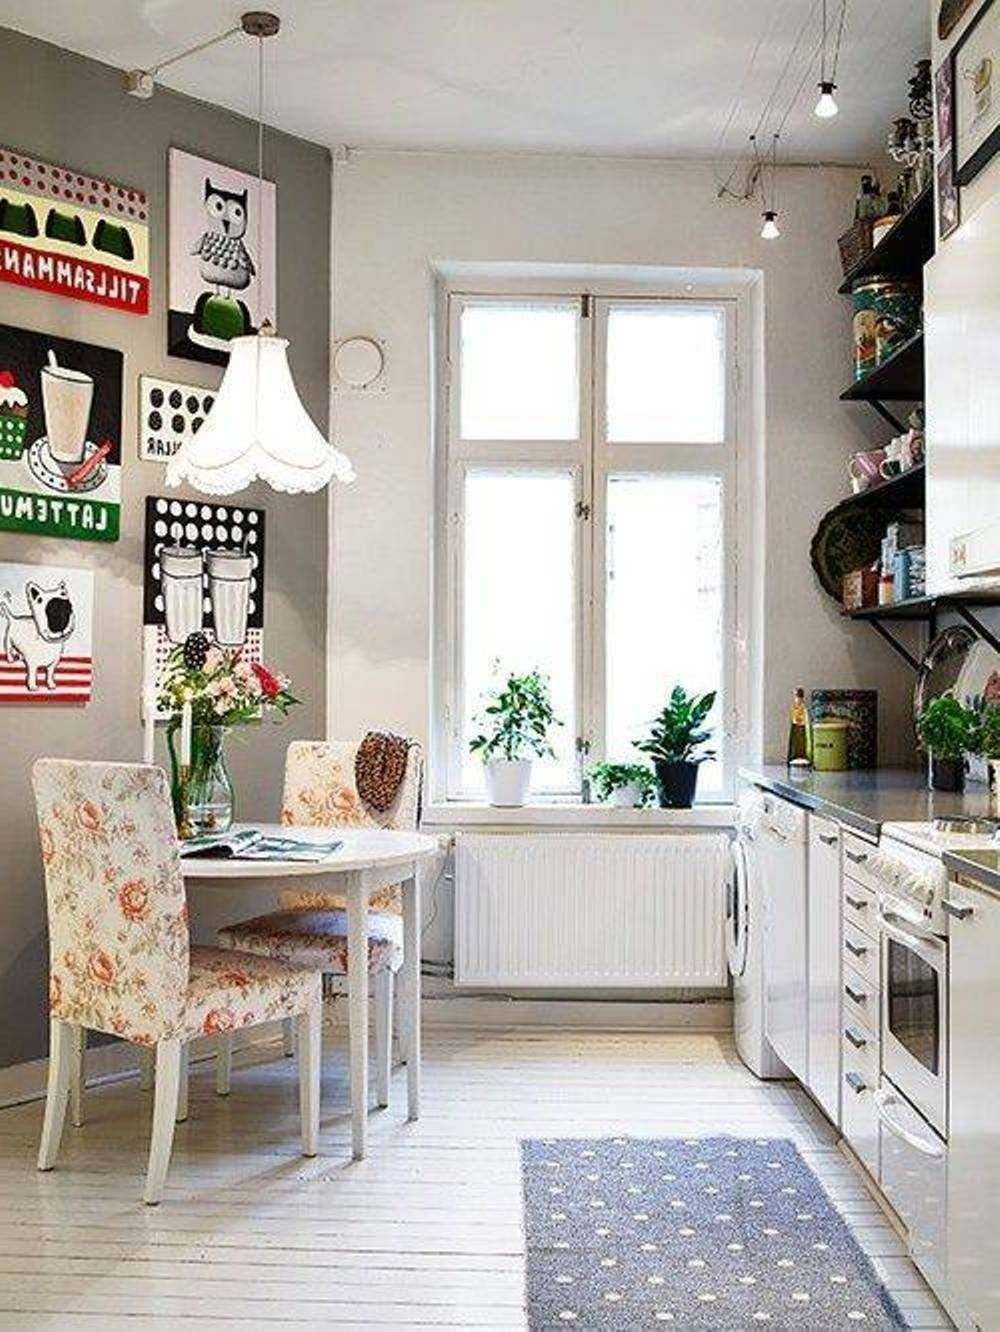 Nice Way To Dress Up A Small Kitchen Design Ideas. Very Small Apartment Living Room Ideas. How To Decorate A Studio Apartment Design Apartments Decorating. Apartments Sweet Small Apartment Decorating Idea Unique